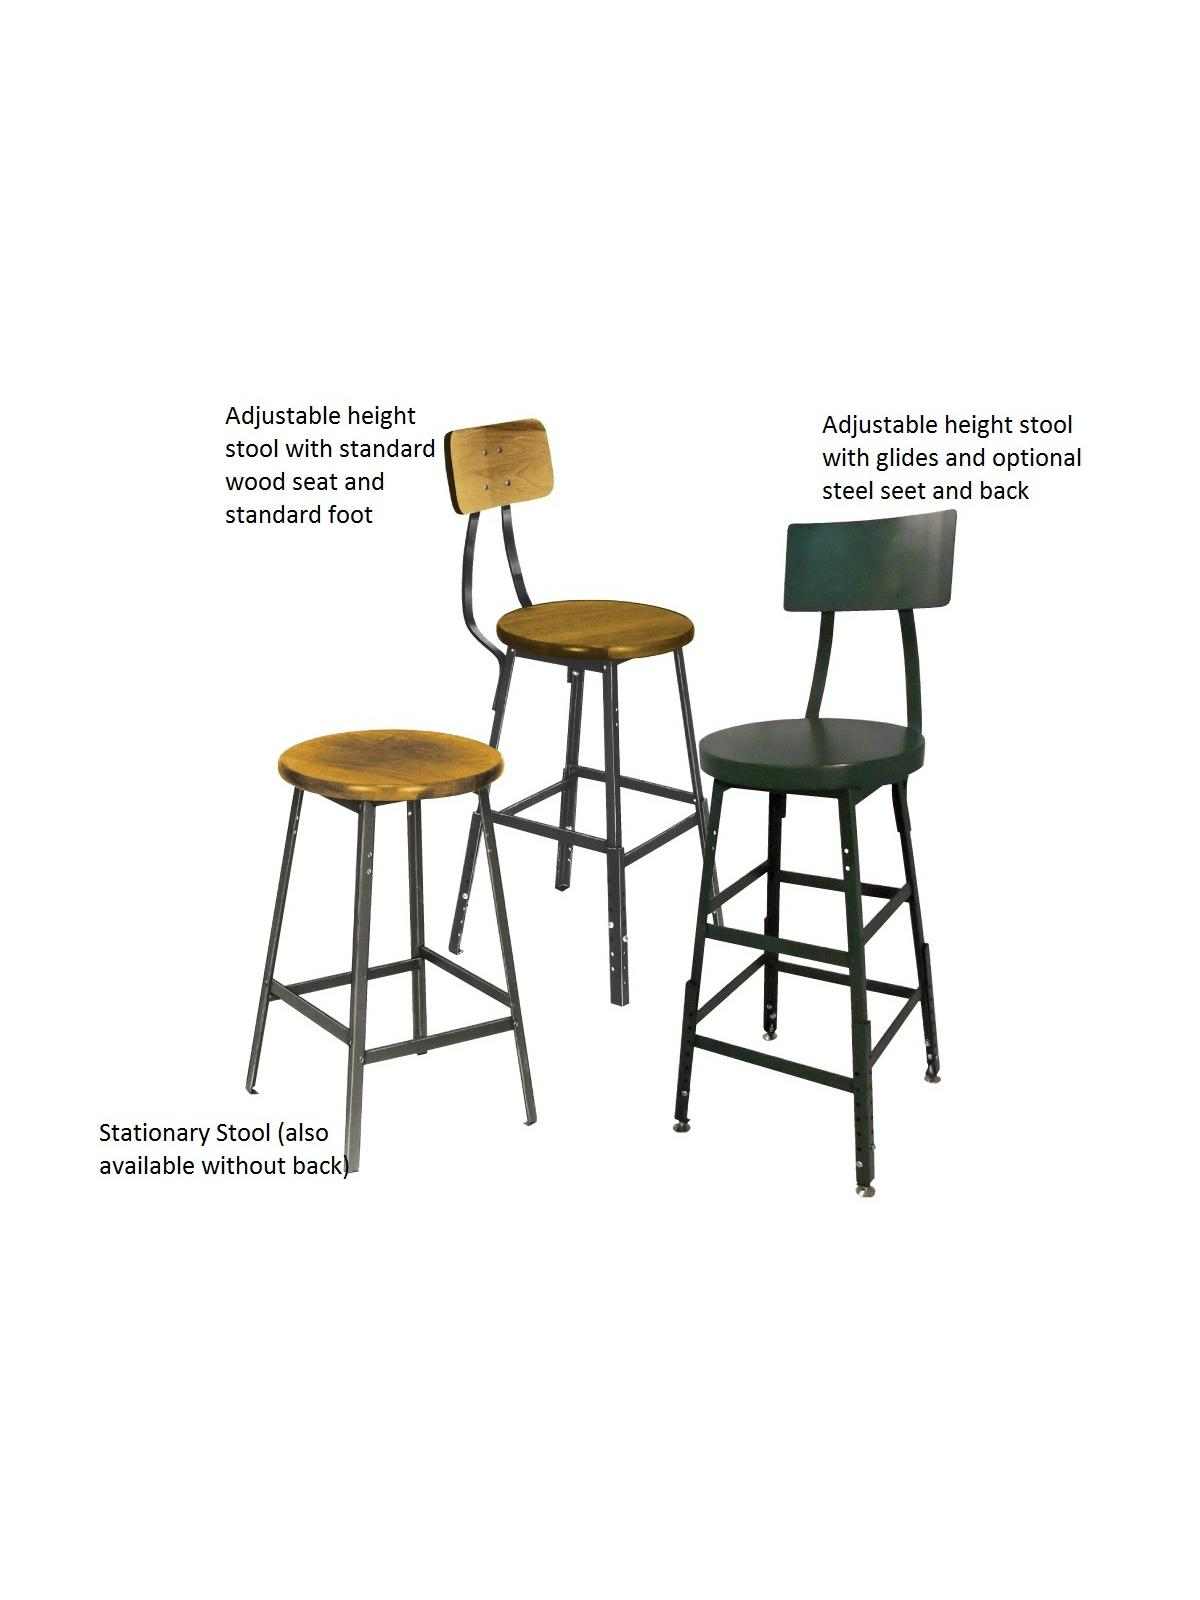 Industrial Shop Stools With Backrest At Nationwide